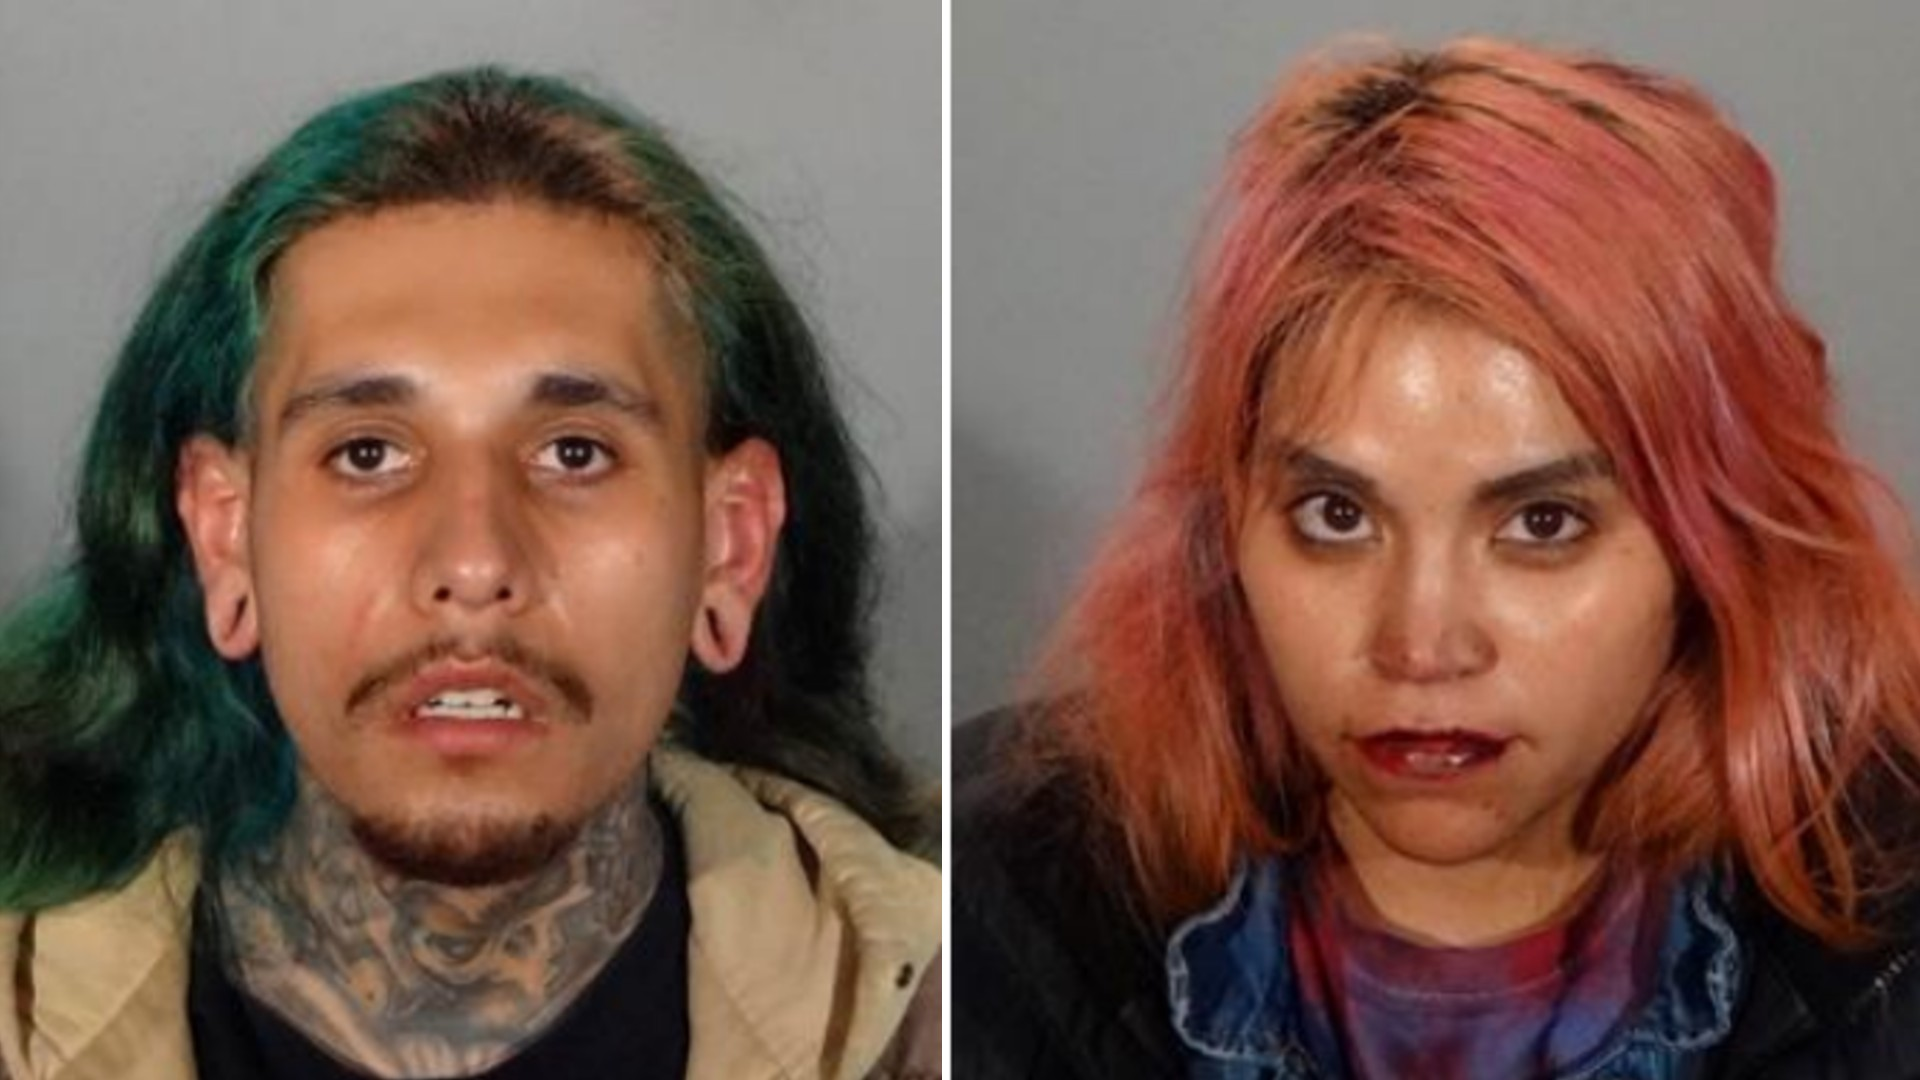 24-year-old Juan Olmos of Winnetka, left, and 30-year-old Stephanie Villasenor of Winnetka, right, are seen in a photo shared by the Glendale Police Department on Feb. 5, 2021.